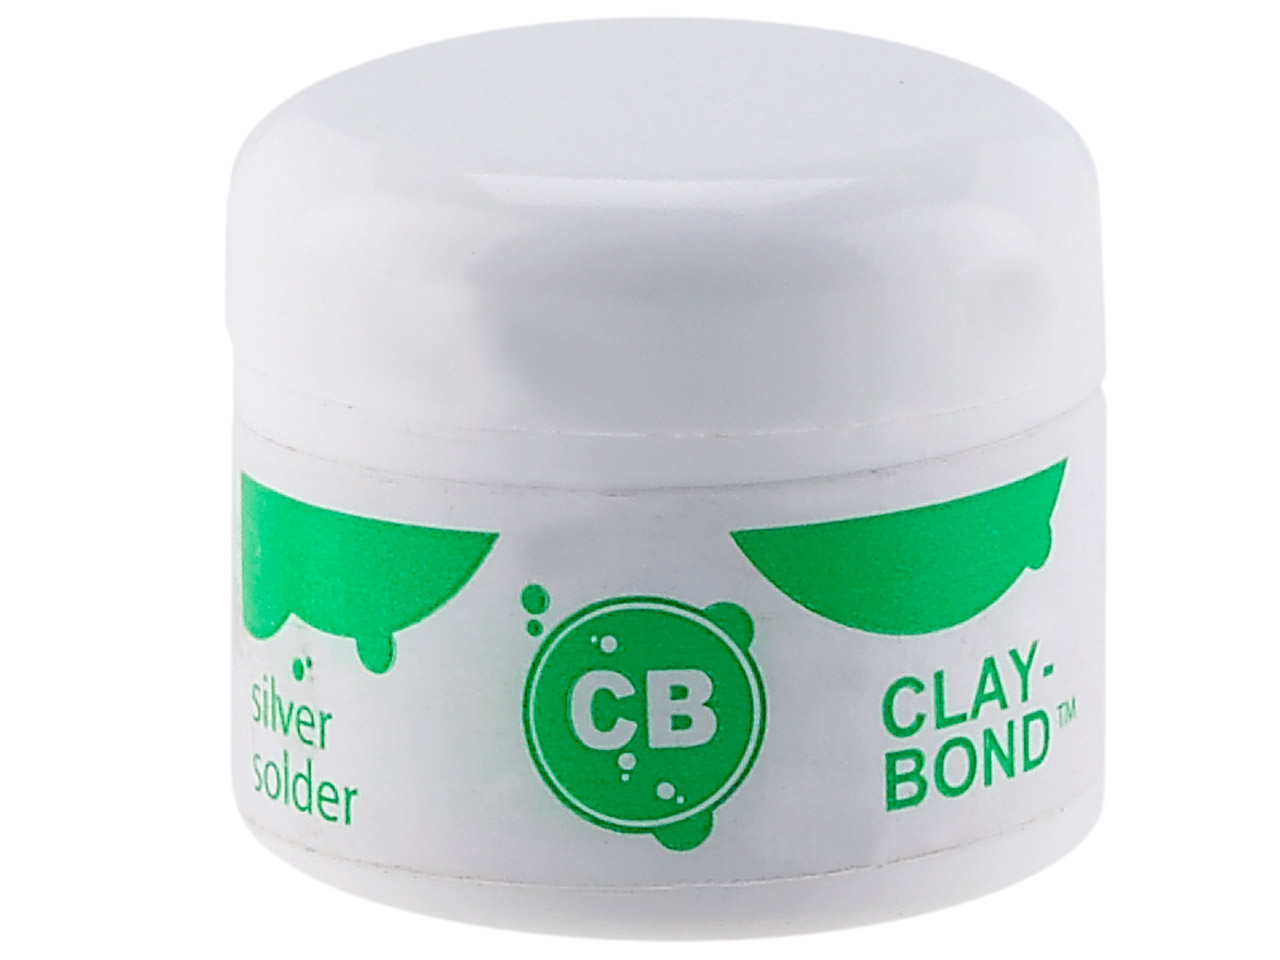 Clay Bond Plus 5g